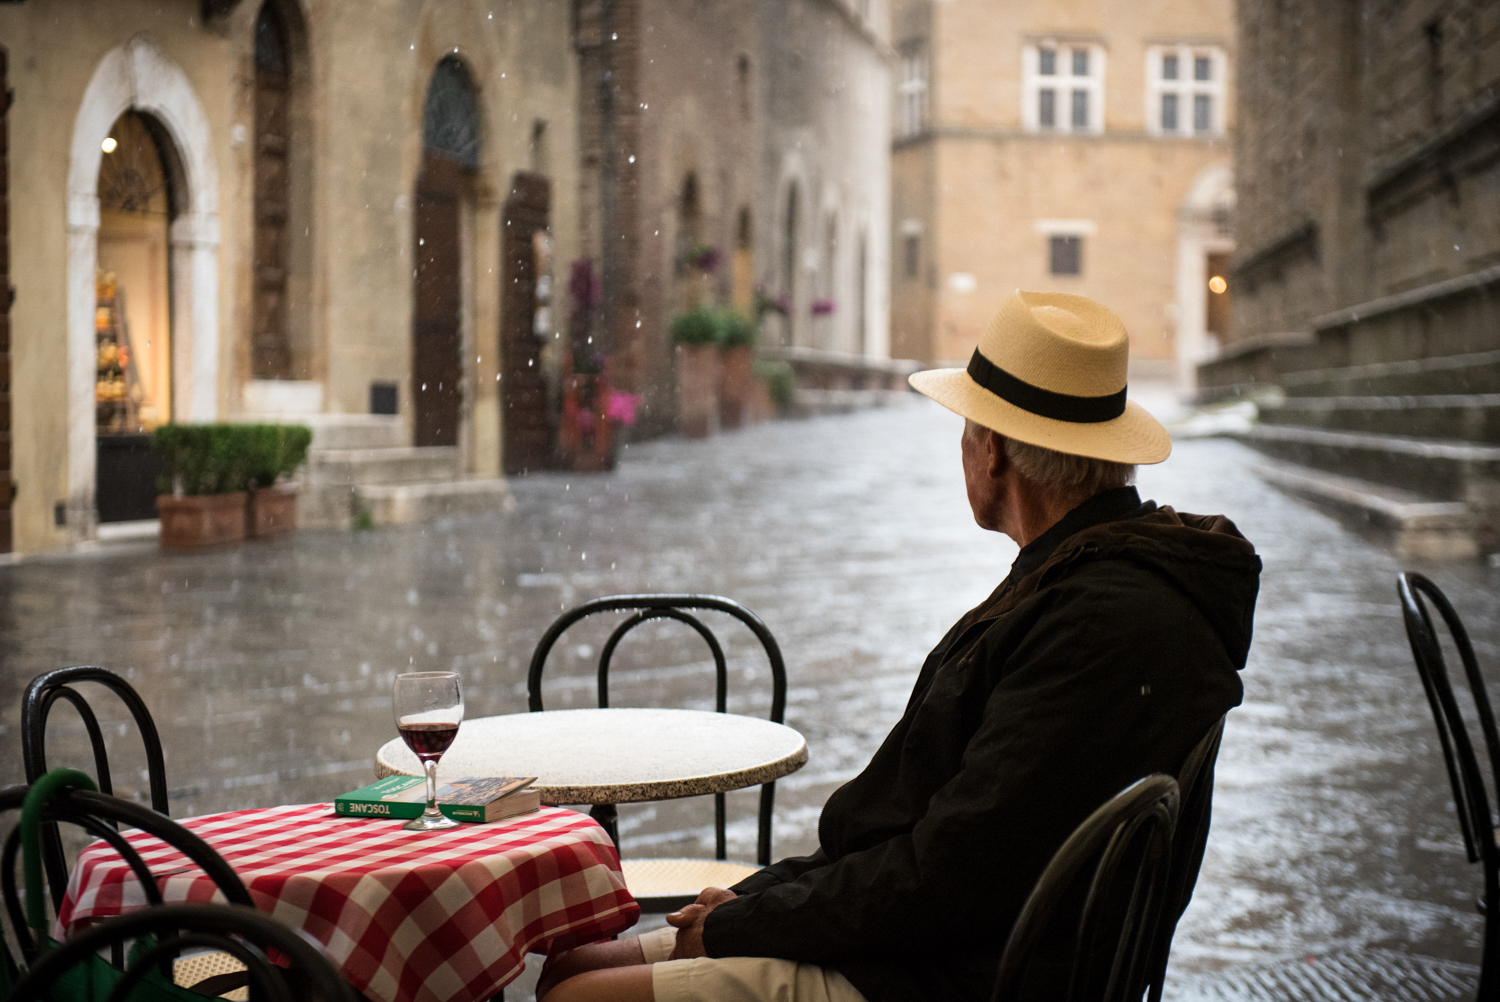 Copia di Rainy day in Pienza.jpg